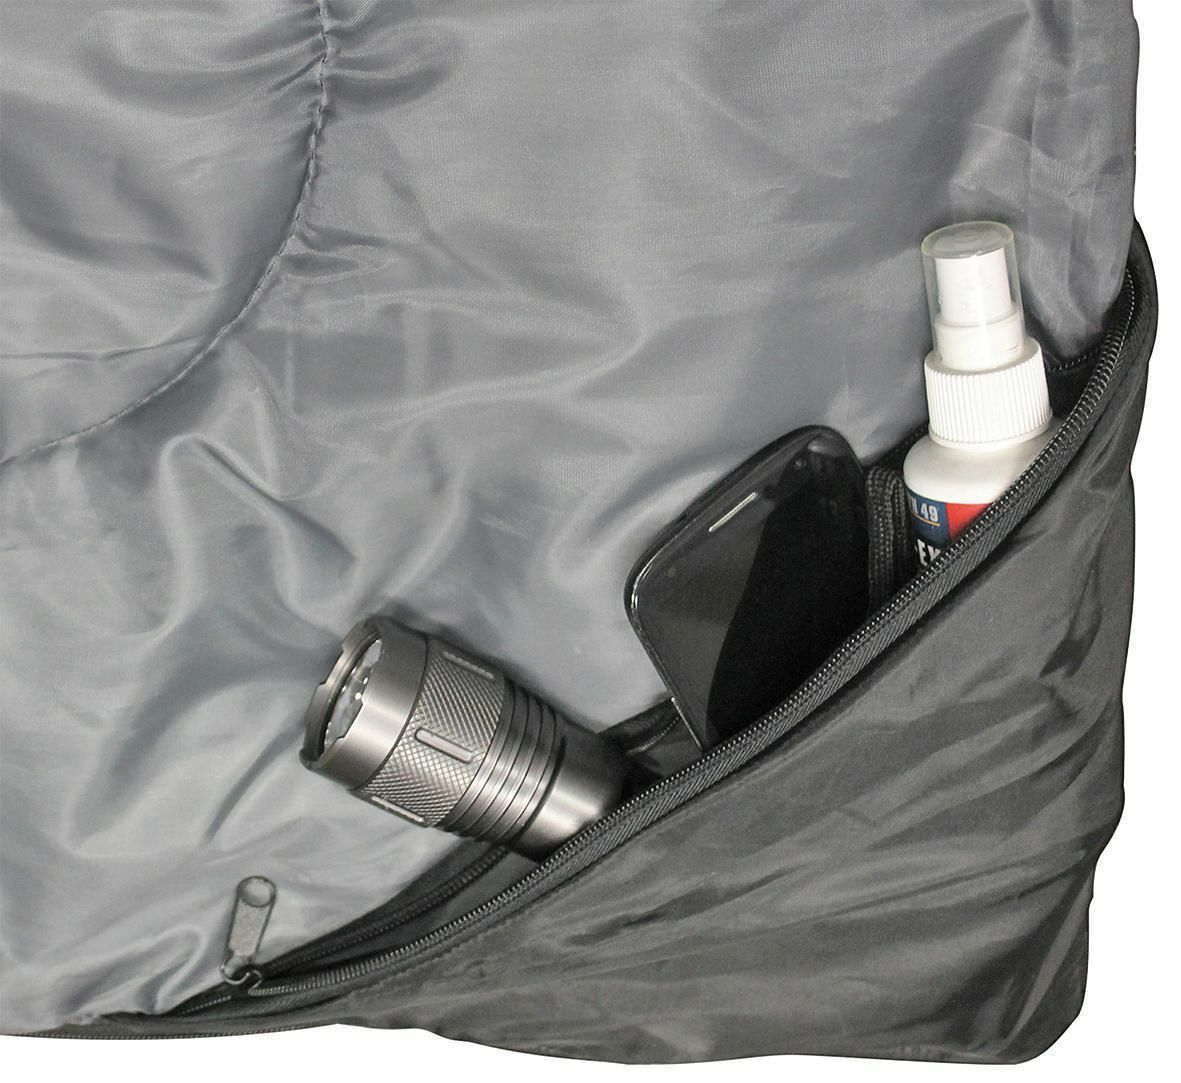 North 49 Double Comfort Sleeping Bag Extra space for 2 people image 2